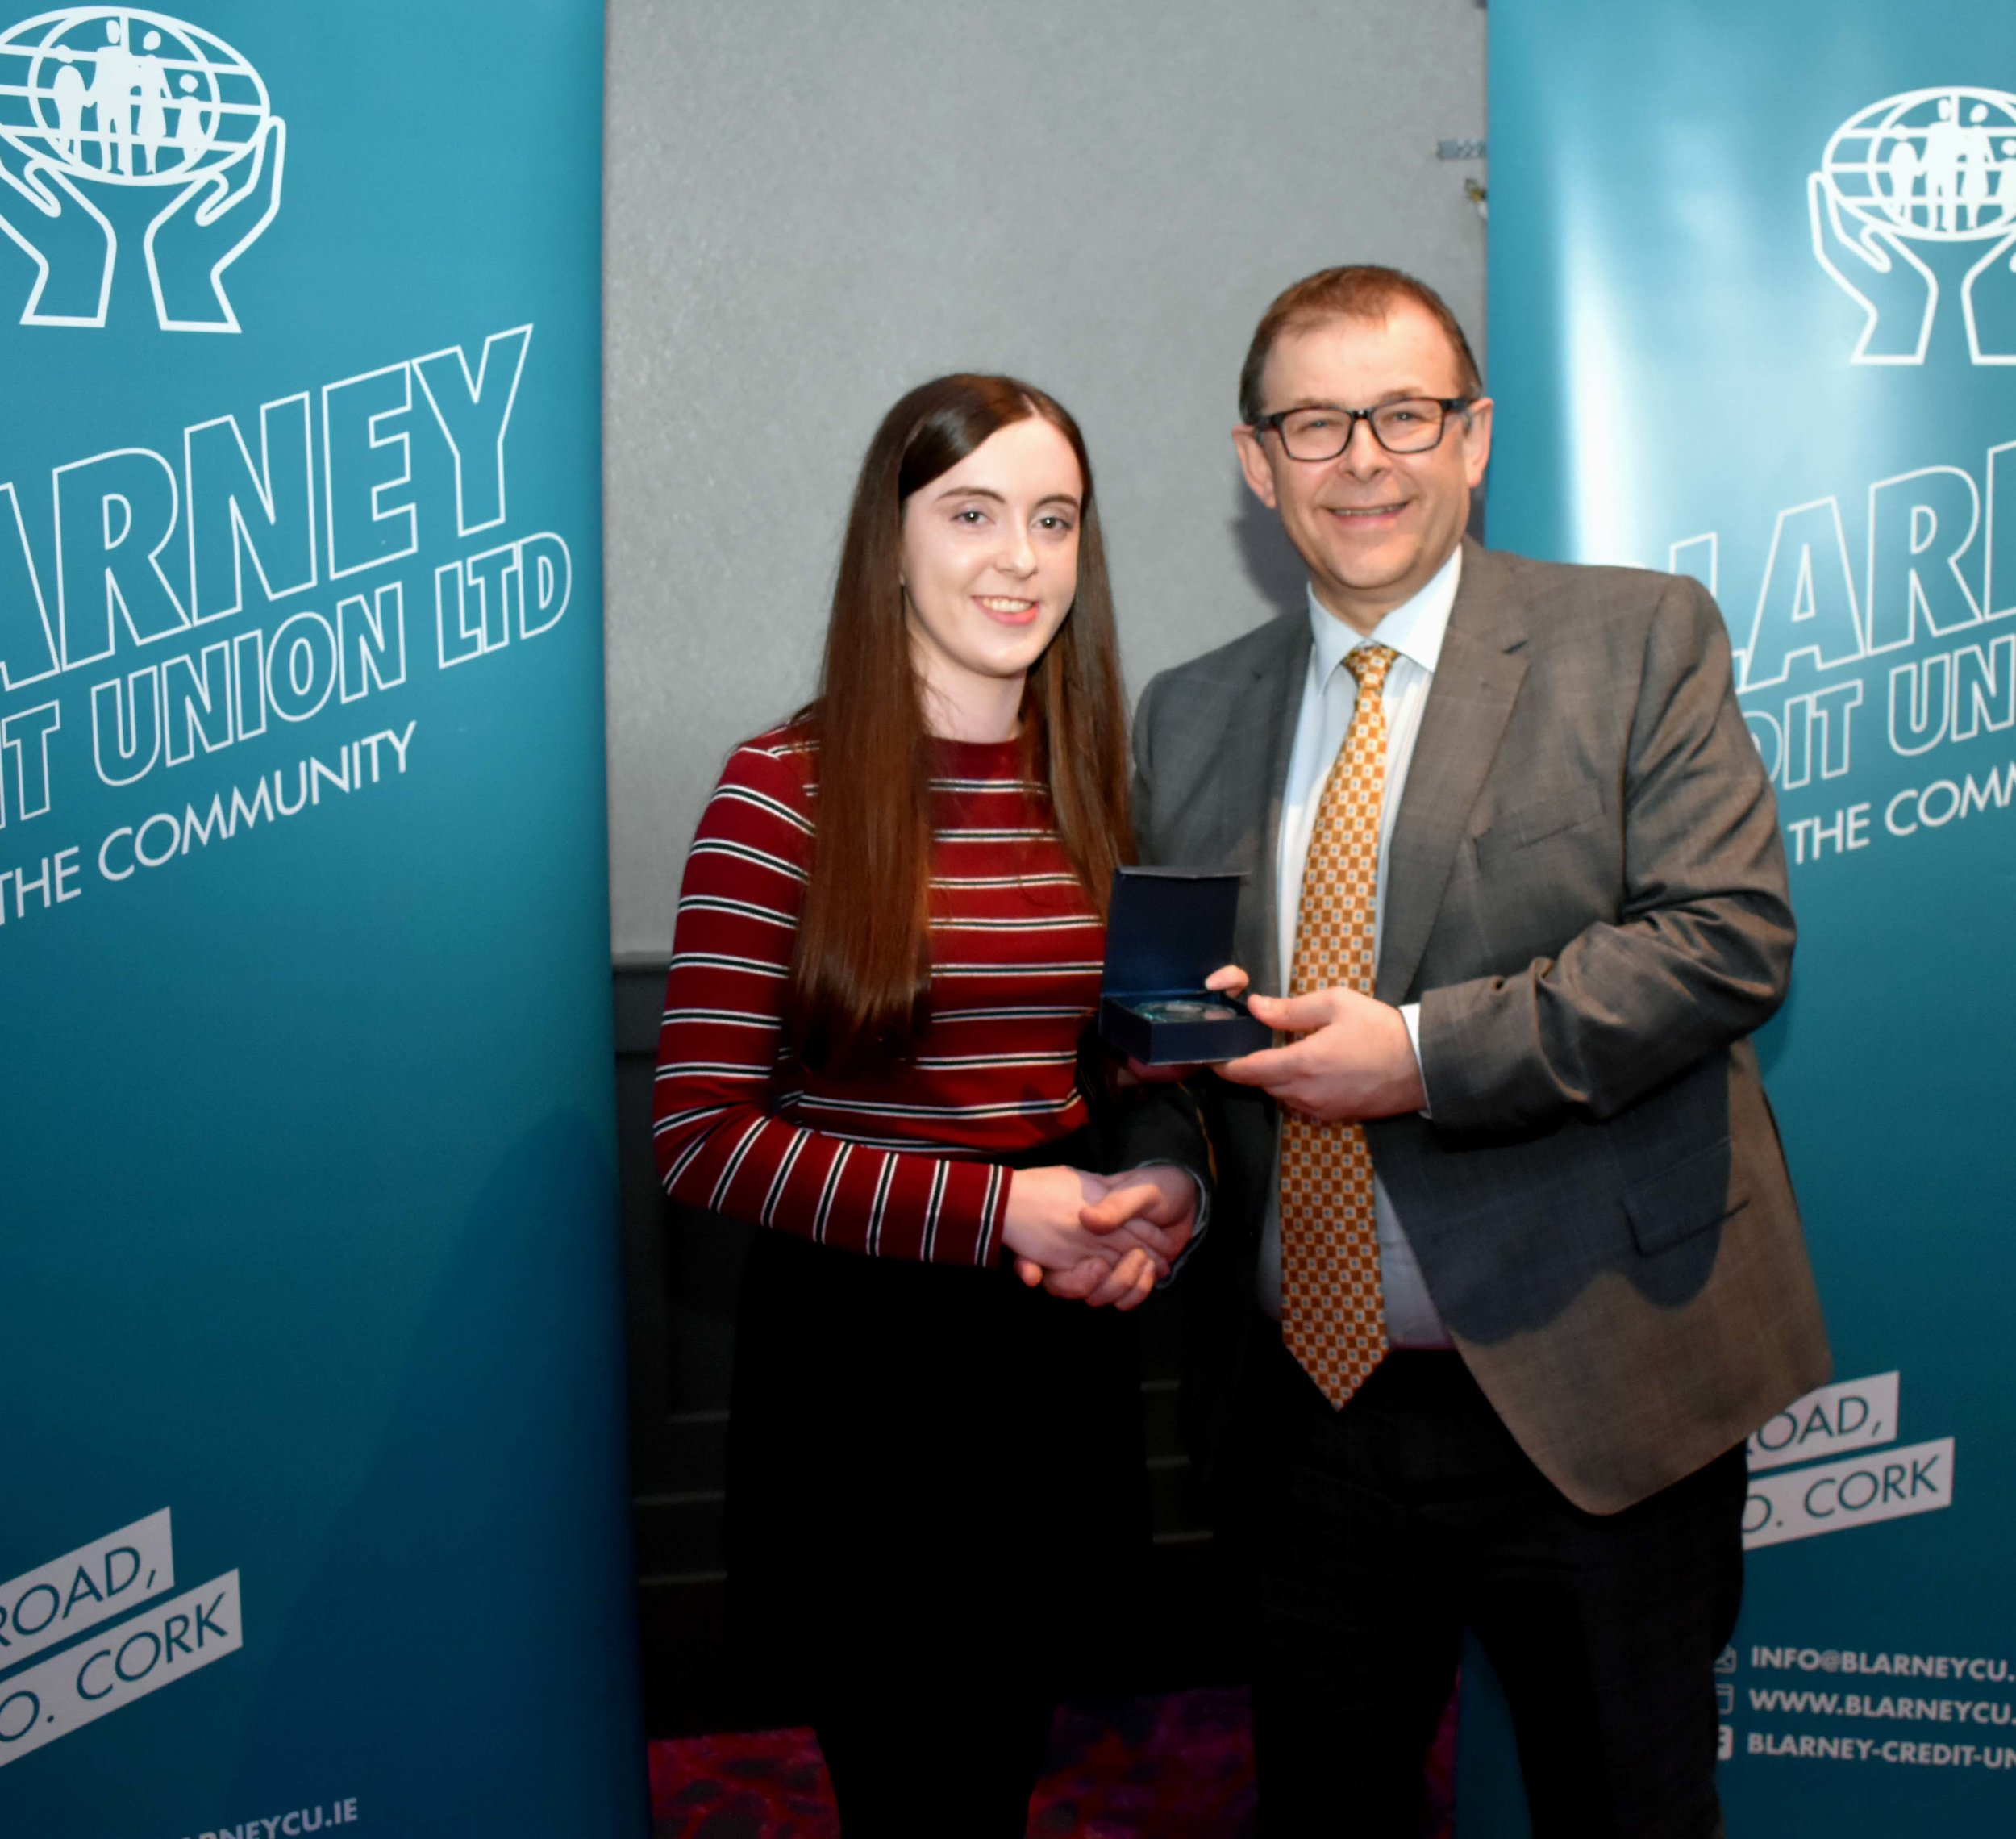 Laoise Gavin receiving the Gold Leaving Certificate Medal for achieving 625 points. (Pictured with Mr. Mark McGloughlin - BOM and Blarney Credit Union)